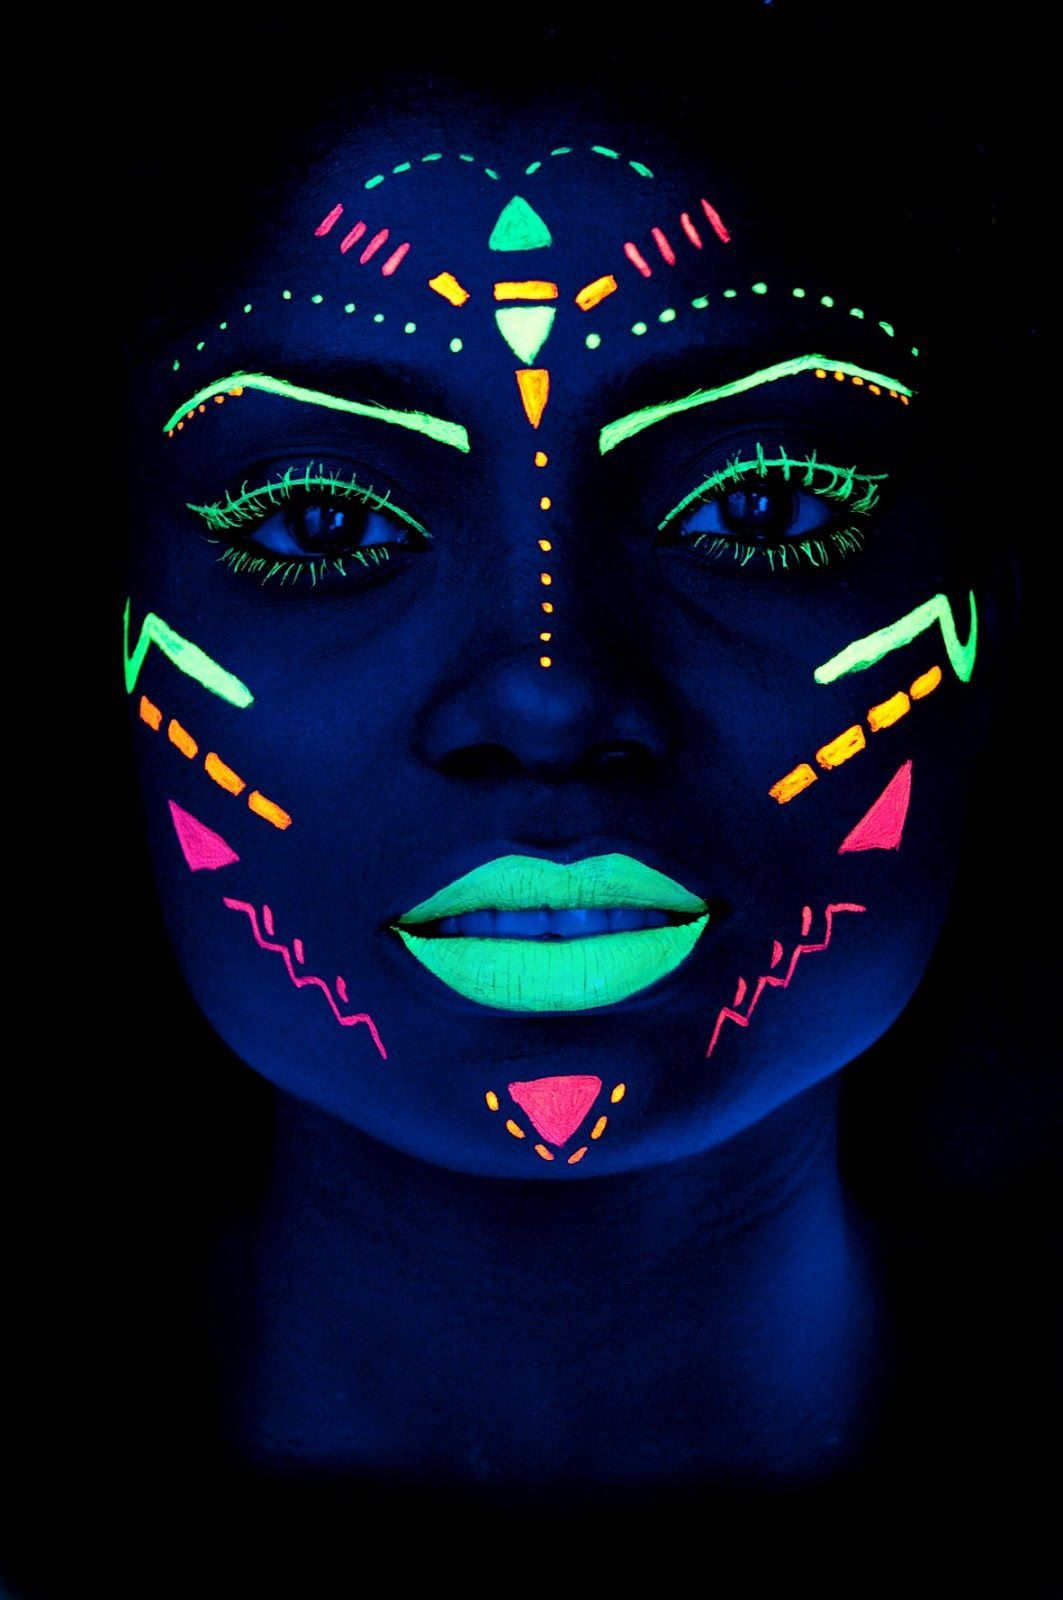 Neon Simply Has A Way Of Enhancing Some Things With Such A Brightness Mix Of Darkness And Brightness Maquillaje De Neon Fotografia Neon Pinturas Faciales